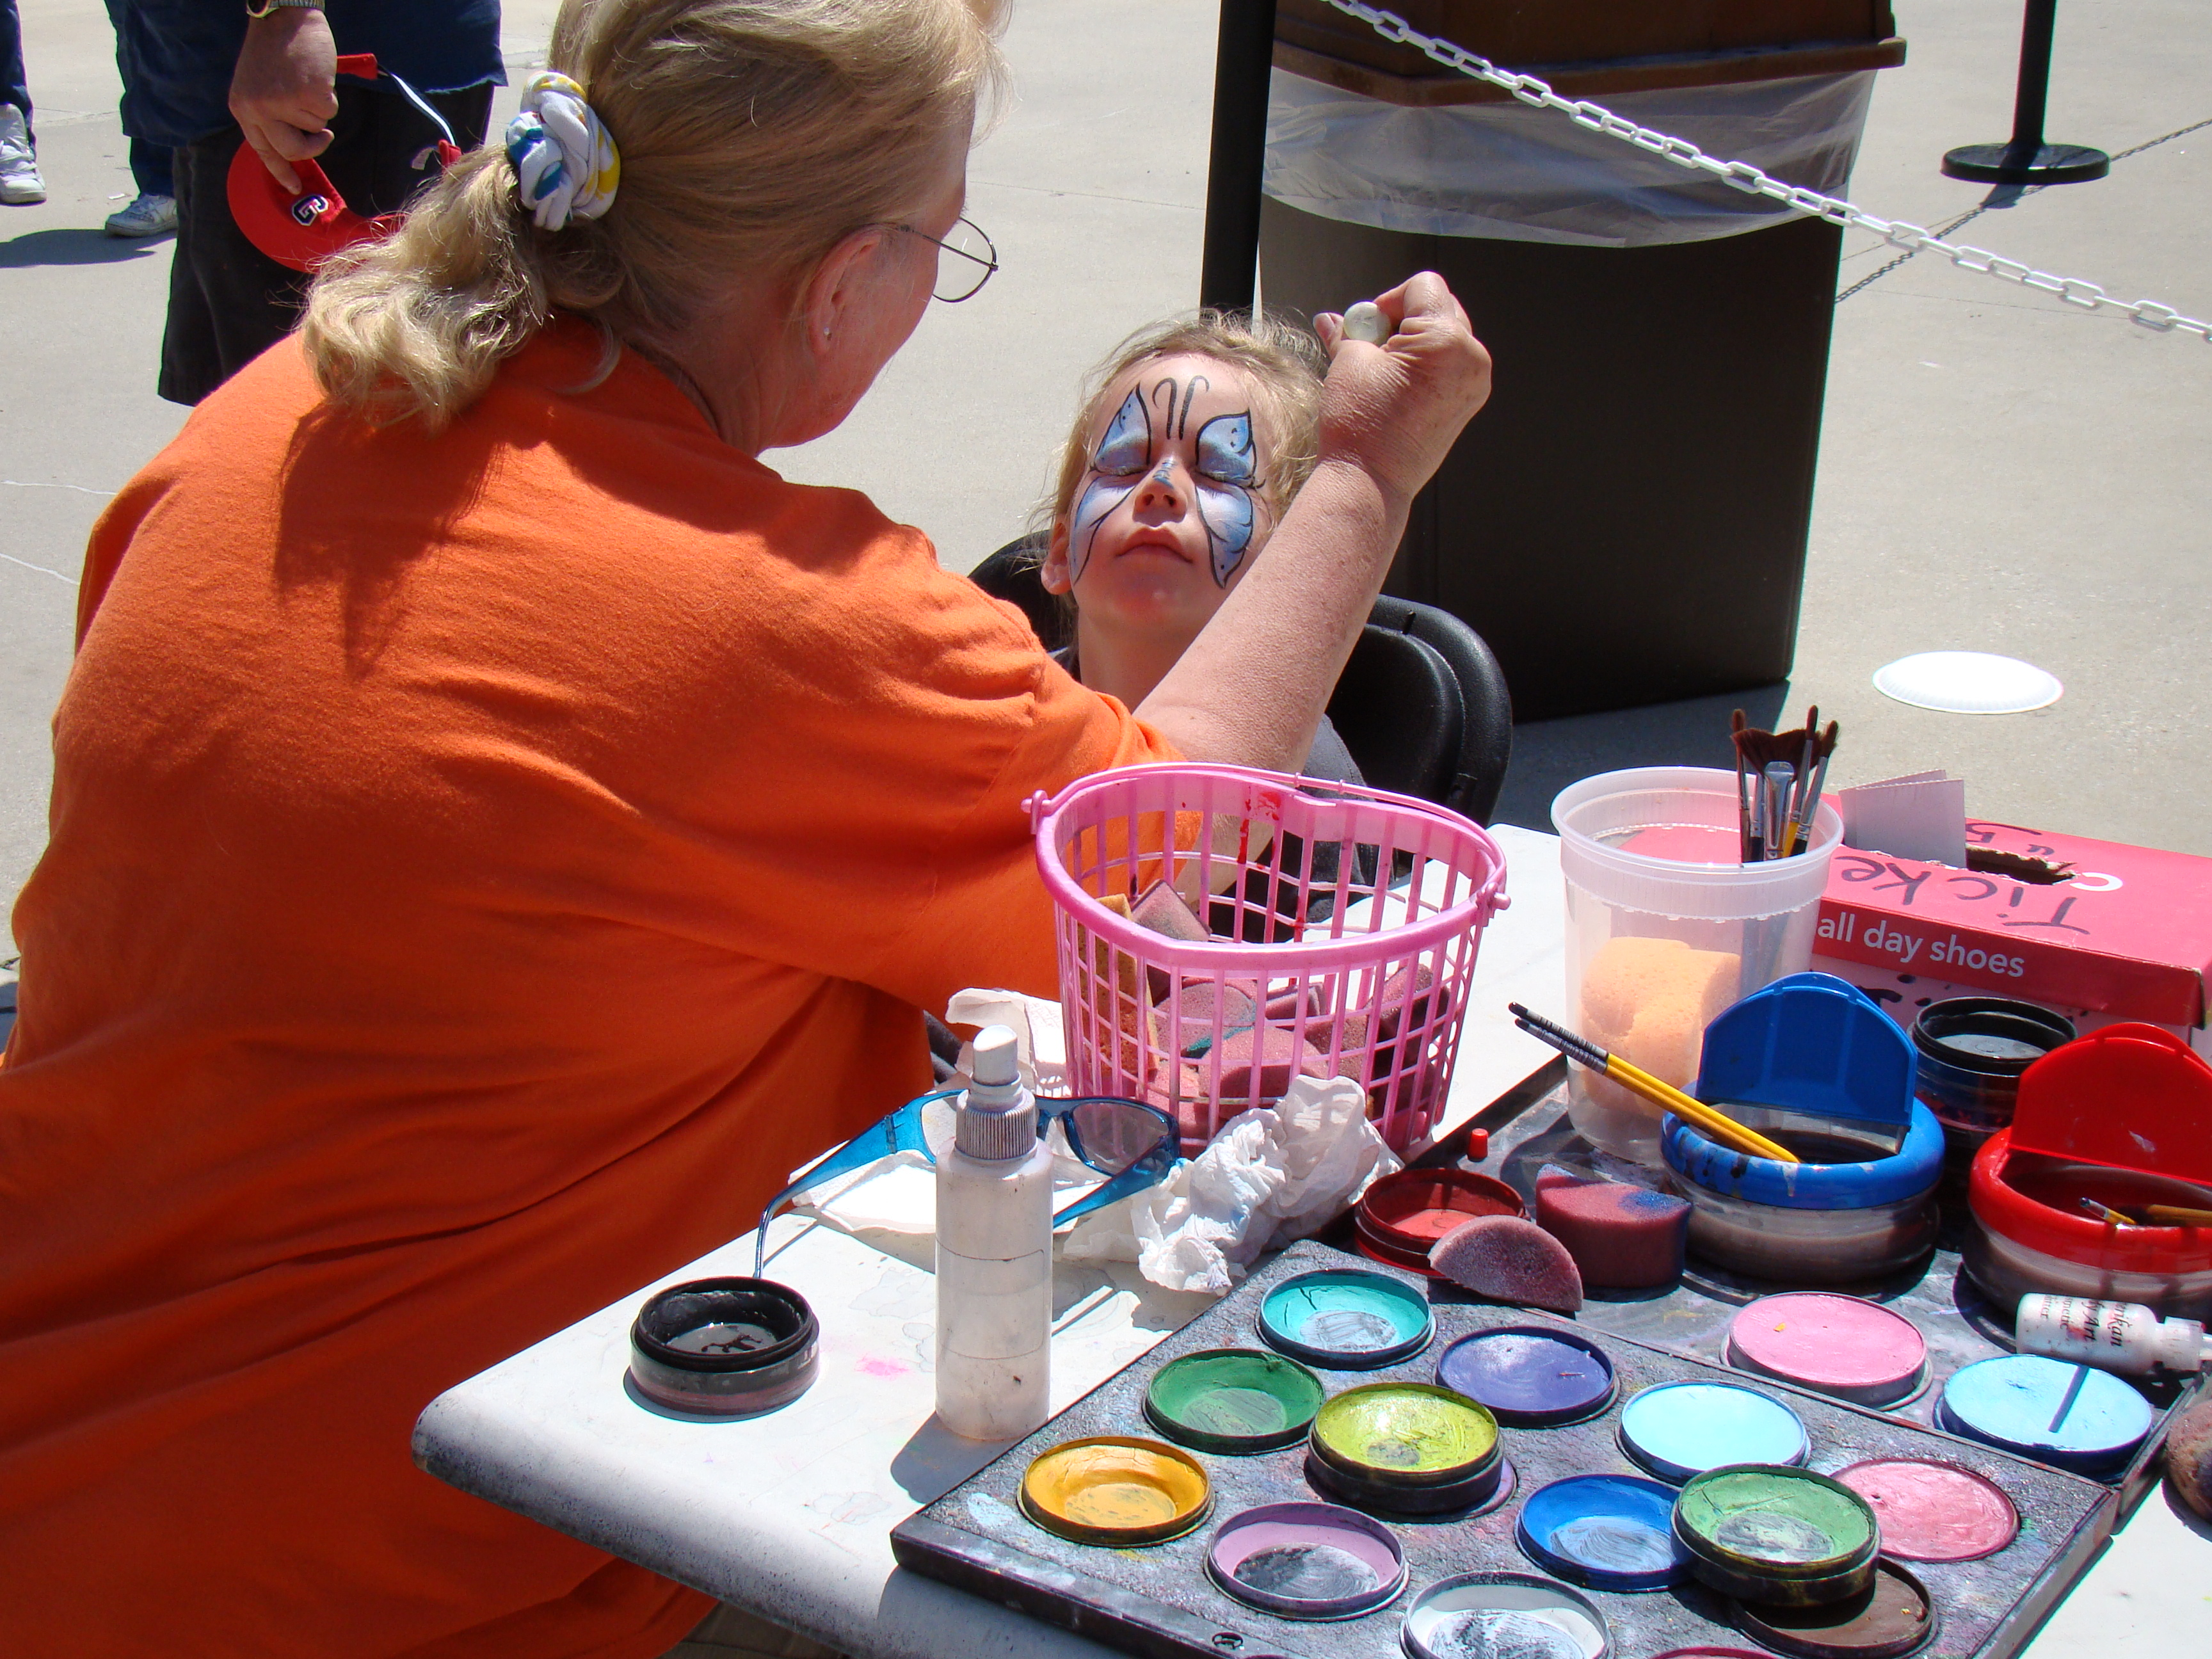 Child_getting_face_painted_at_Bowie_Baysox_game